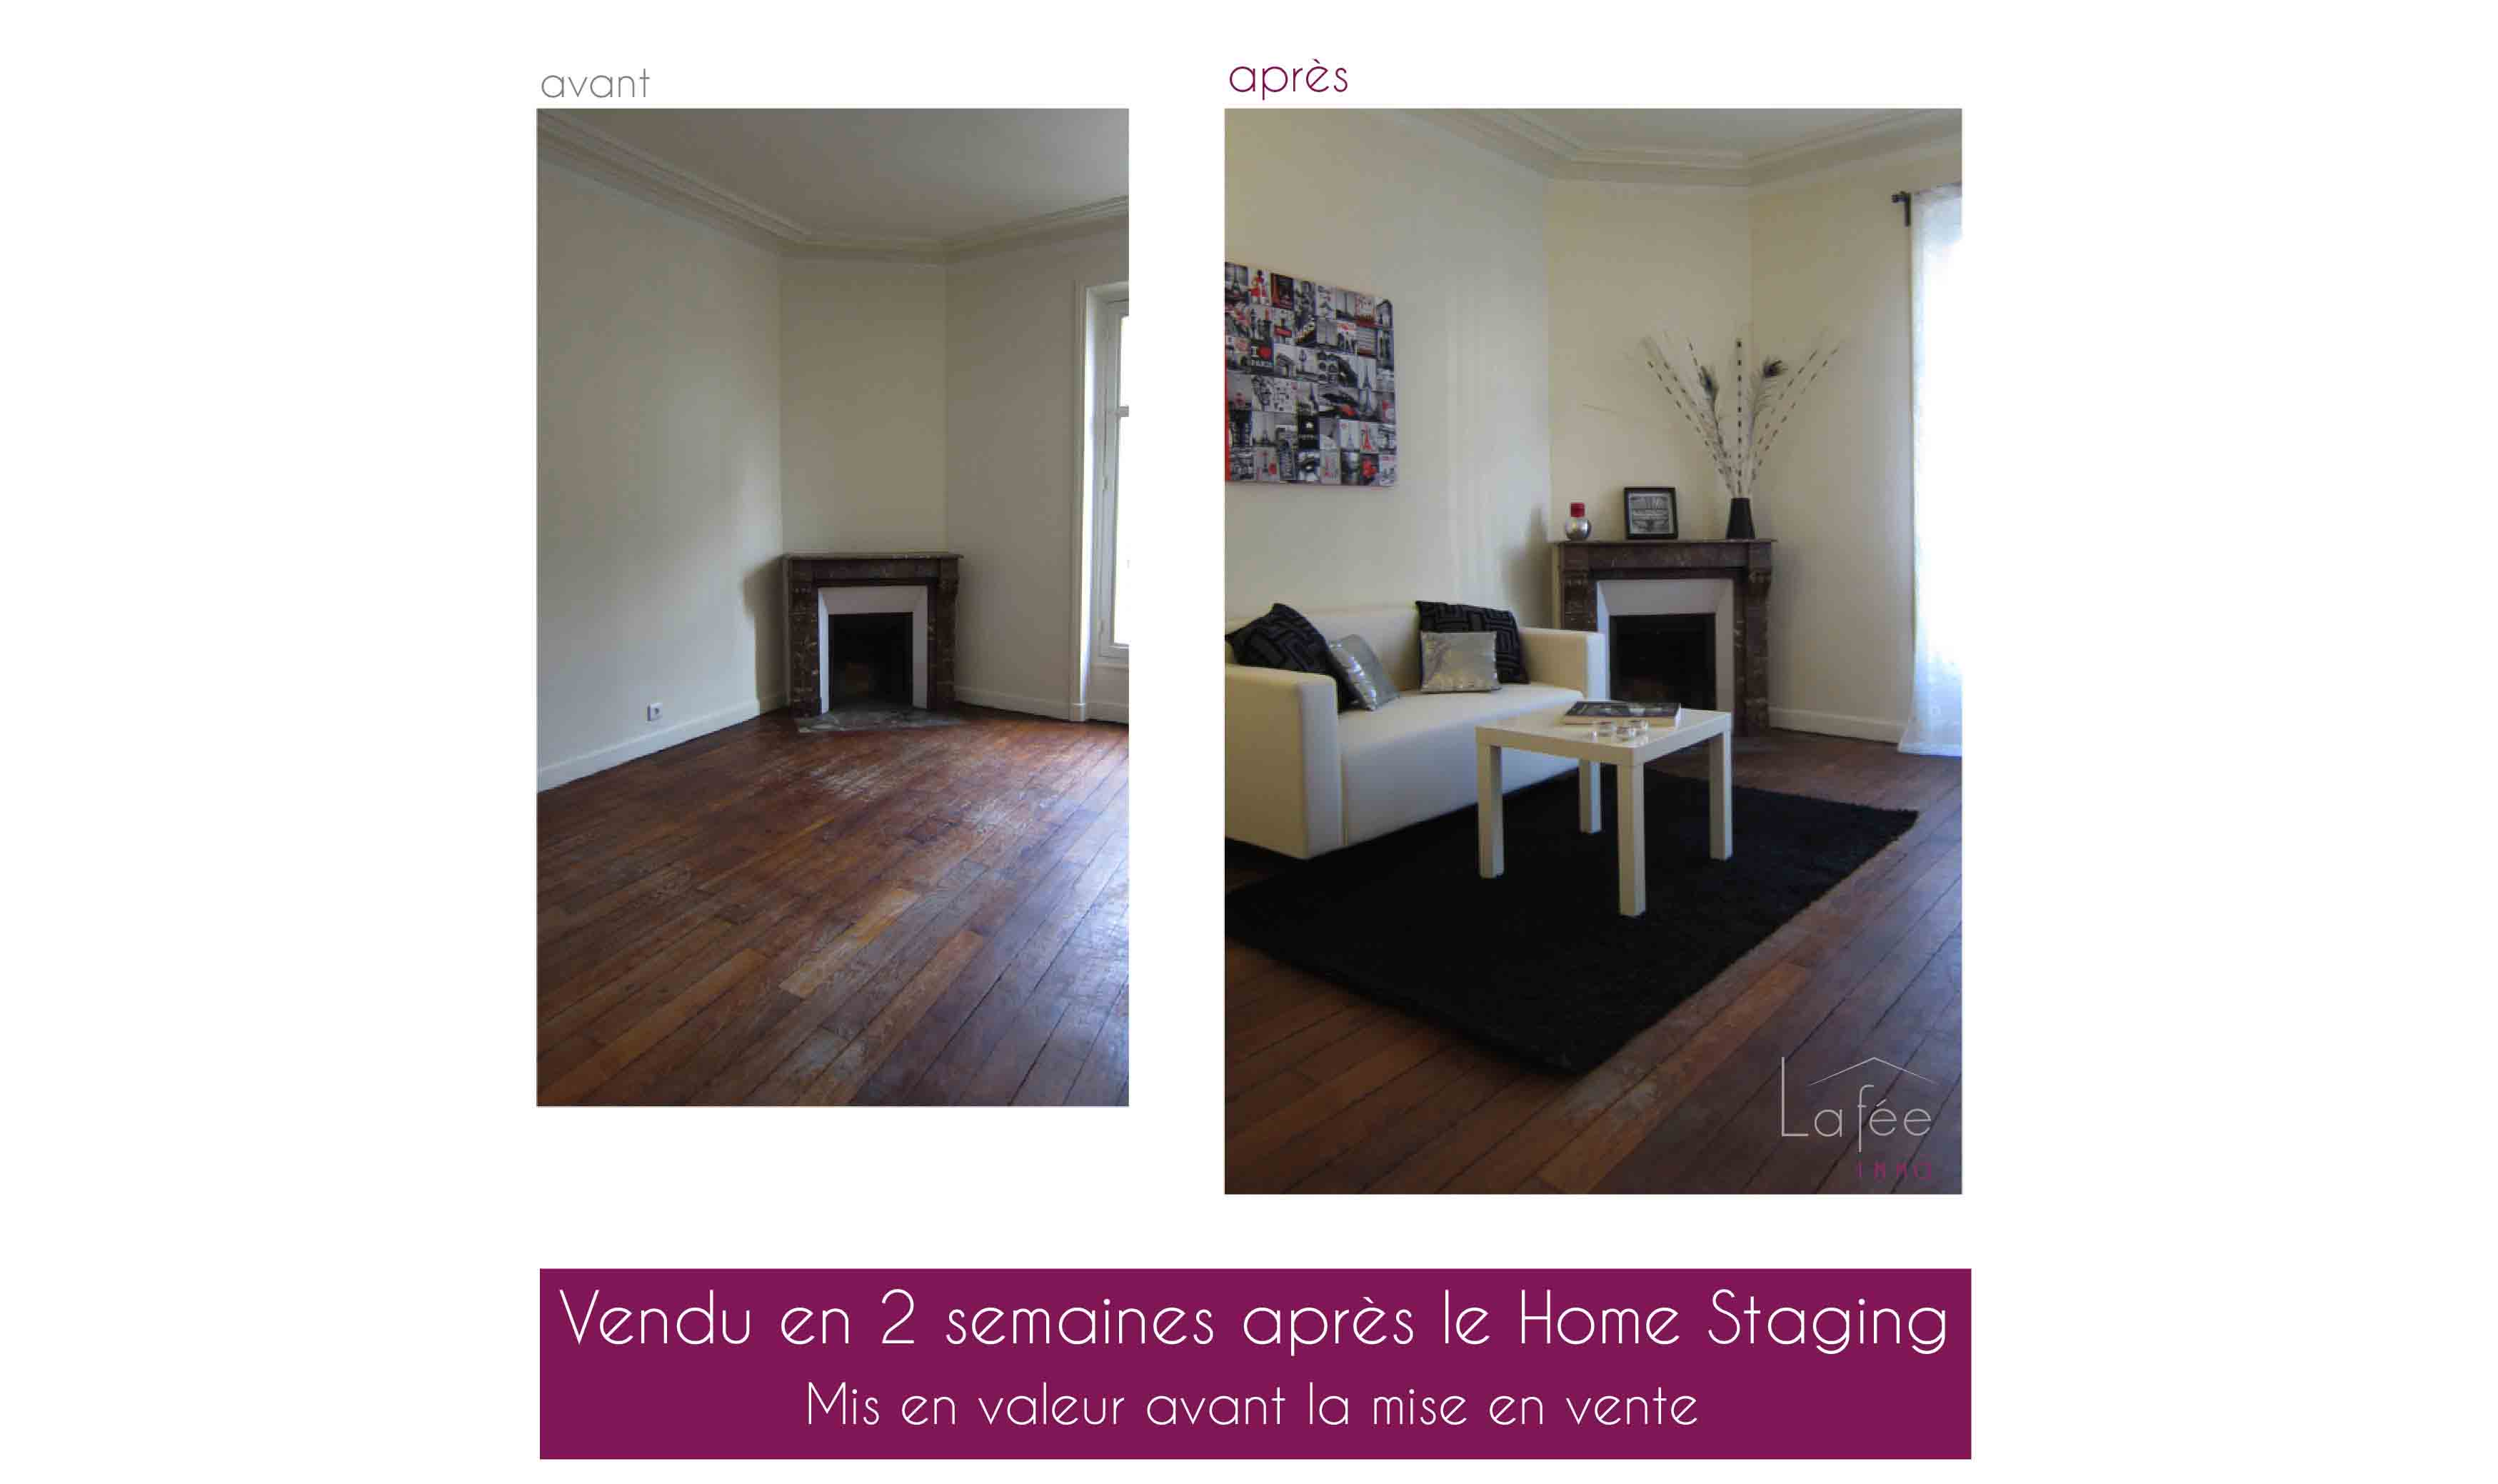 home staging de lieux vides 4